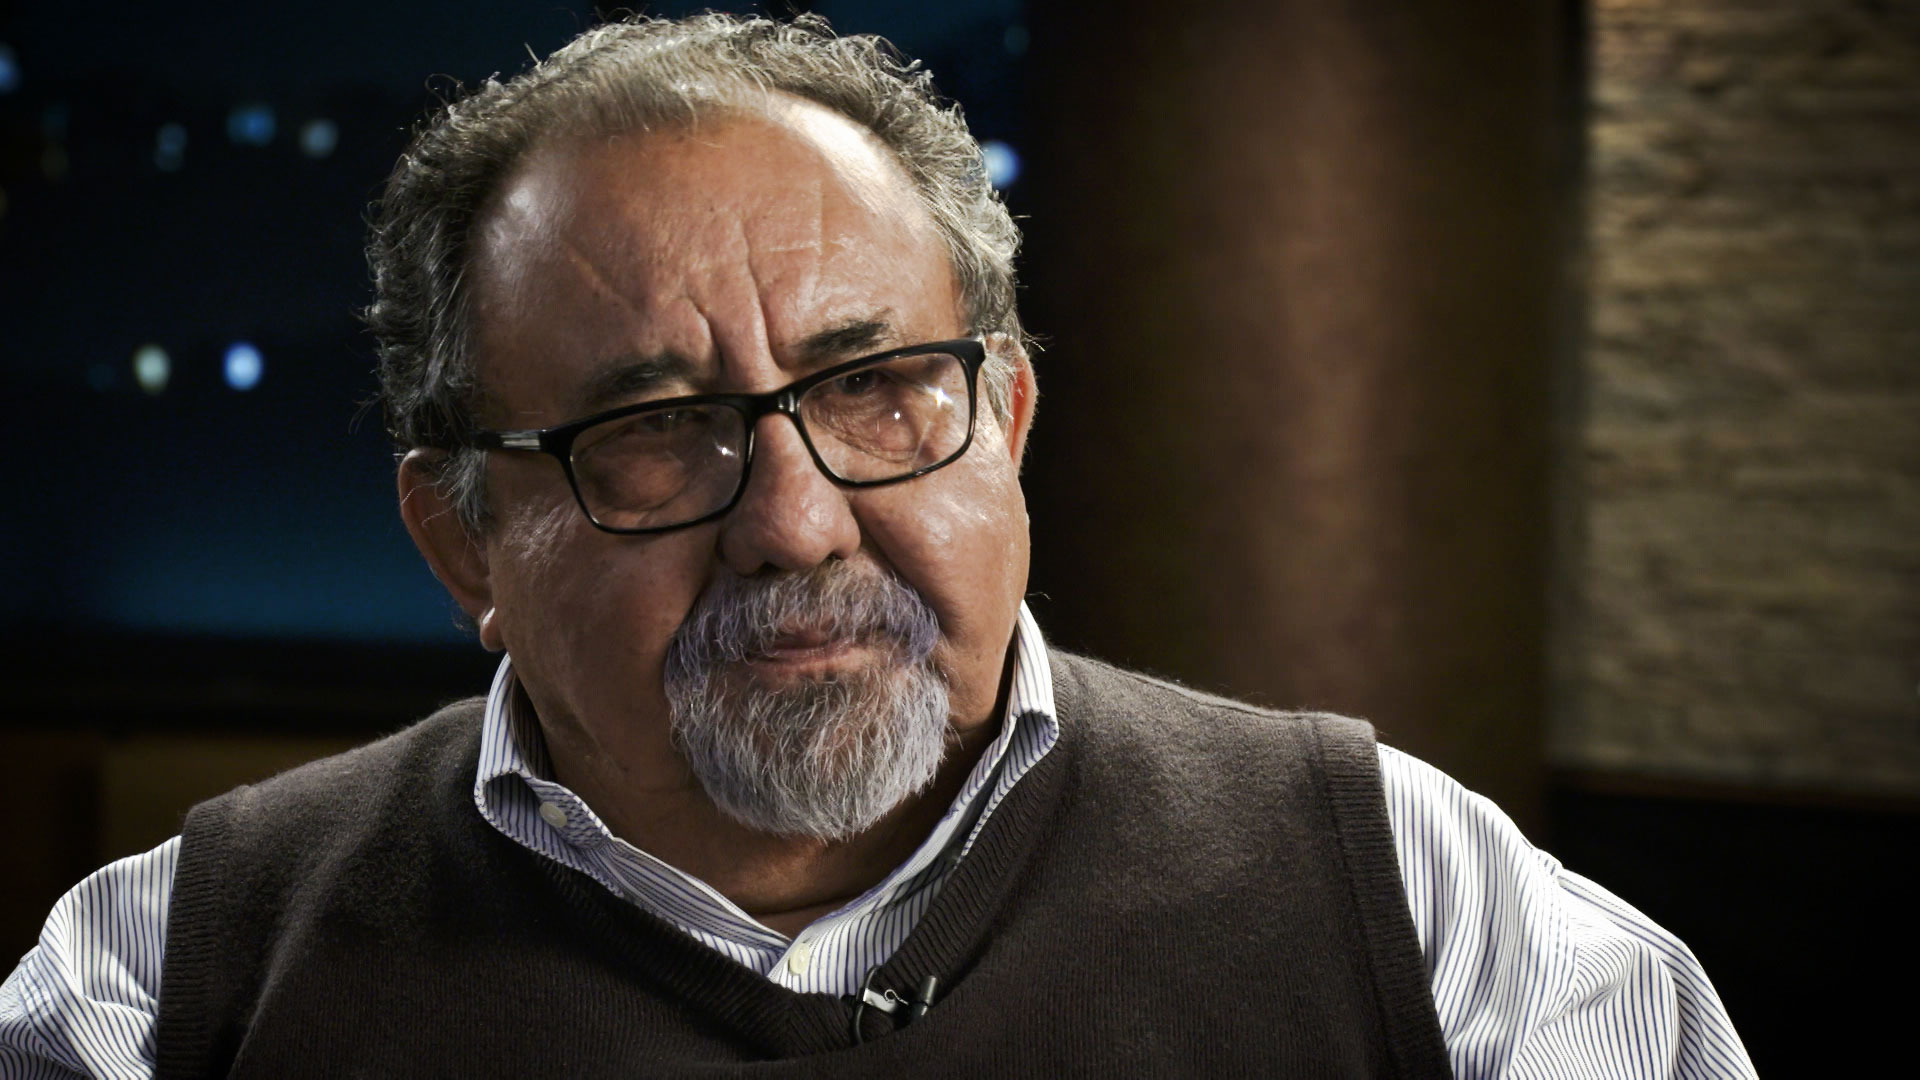 U.S. Rep. Raúl Grijalva sits for an interview at Arizona Public Media in November 2019.